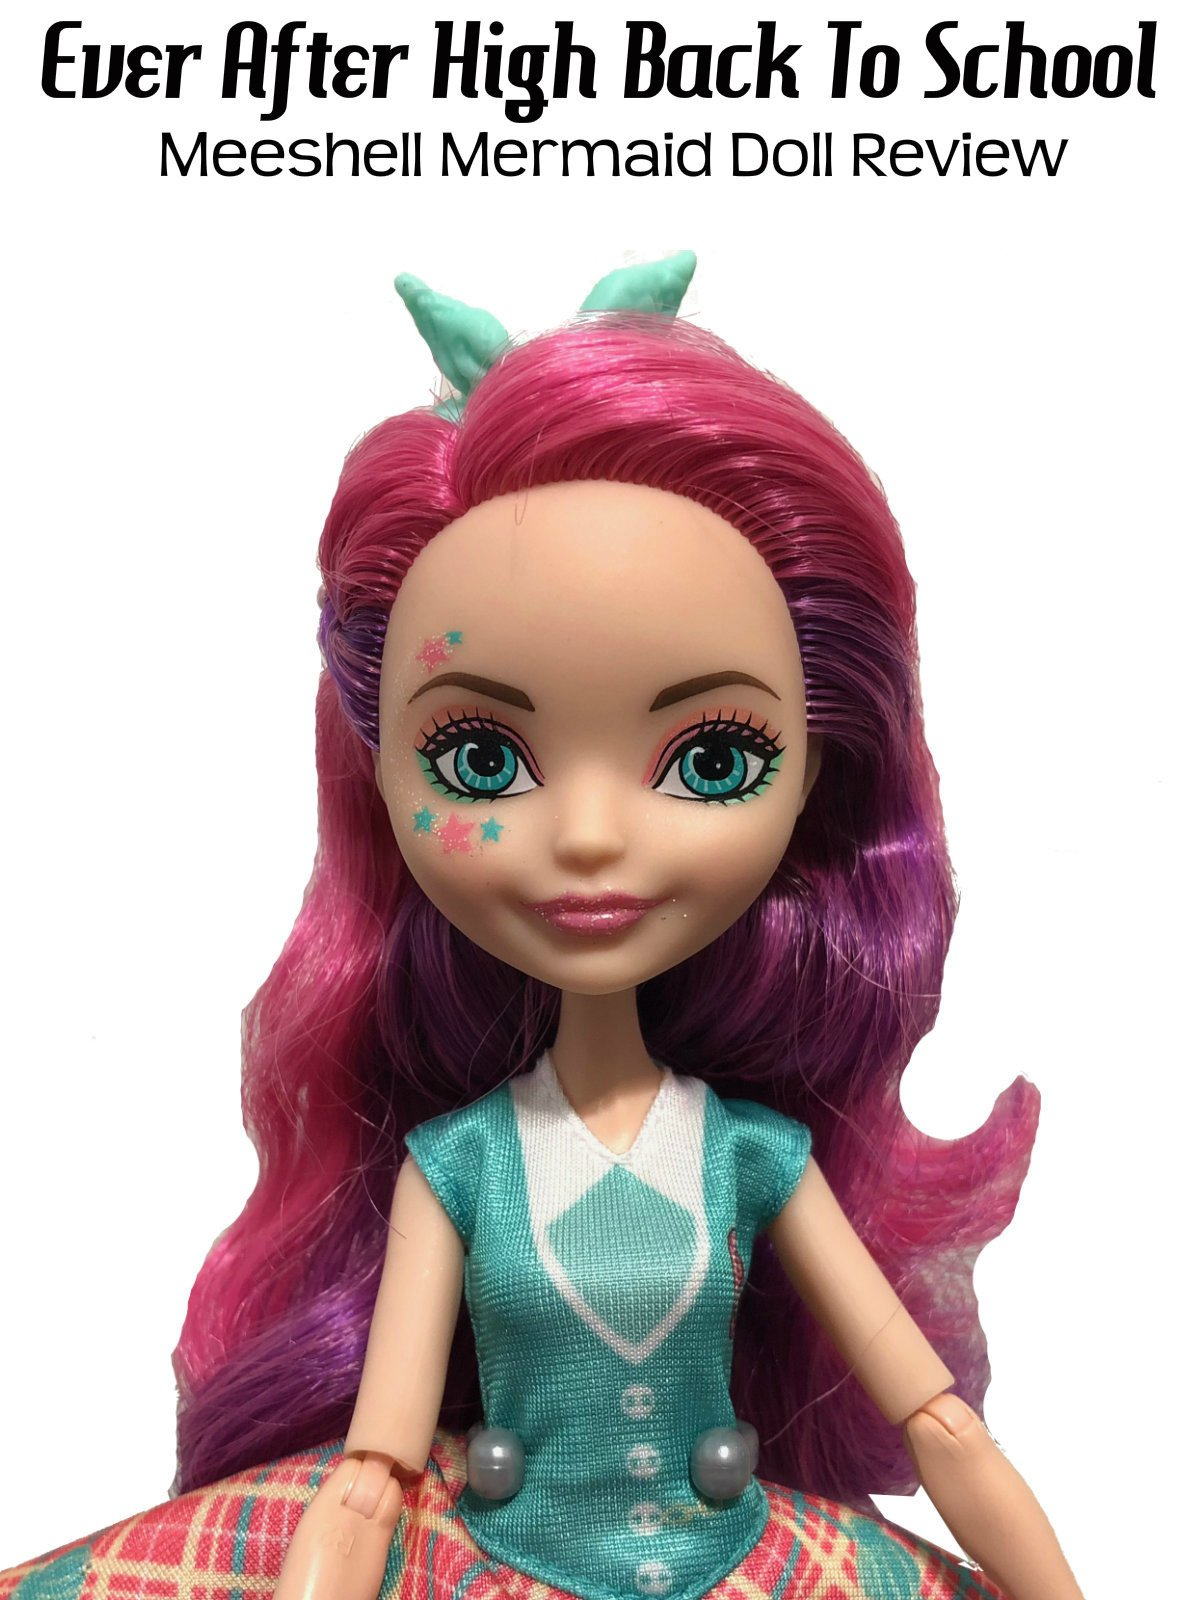 Review: Ever After High Back To School Meeshell Mermaid Doll Review